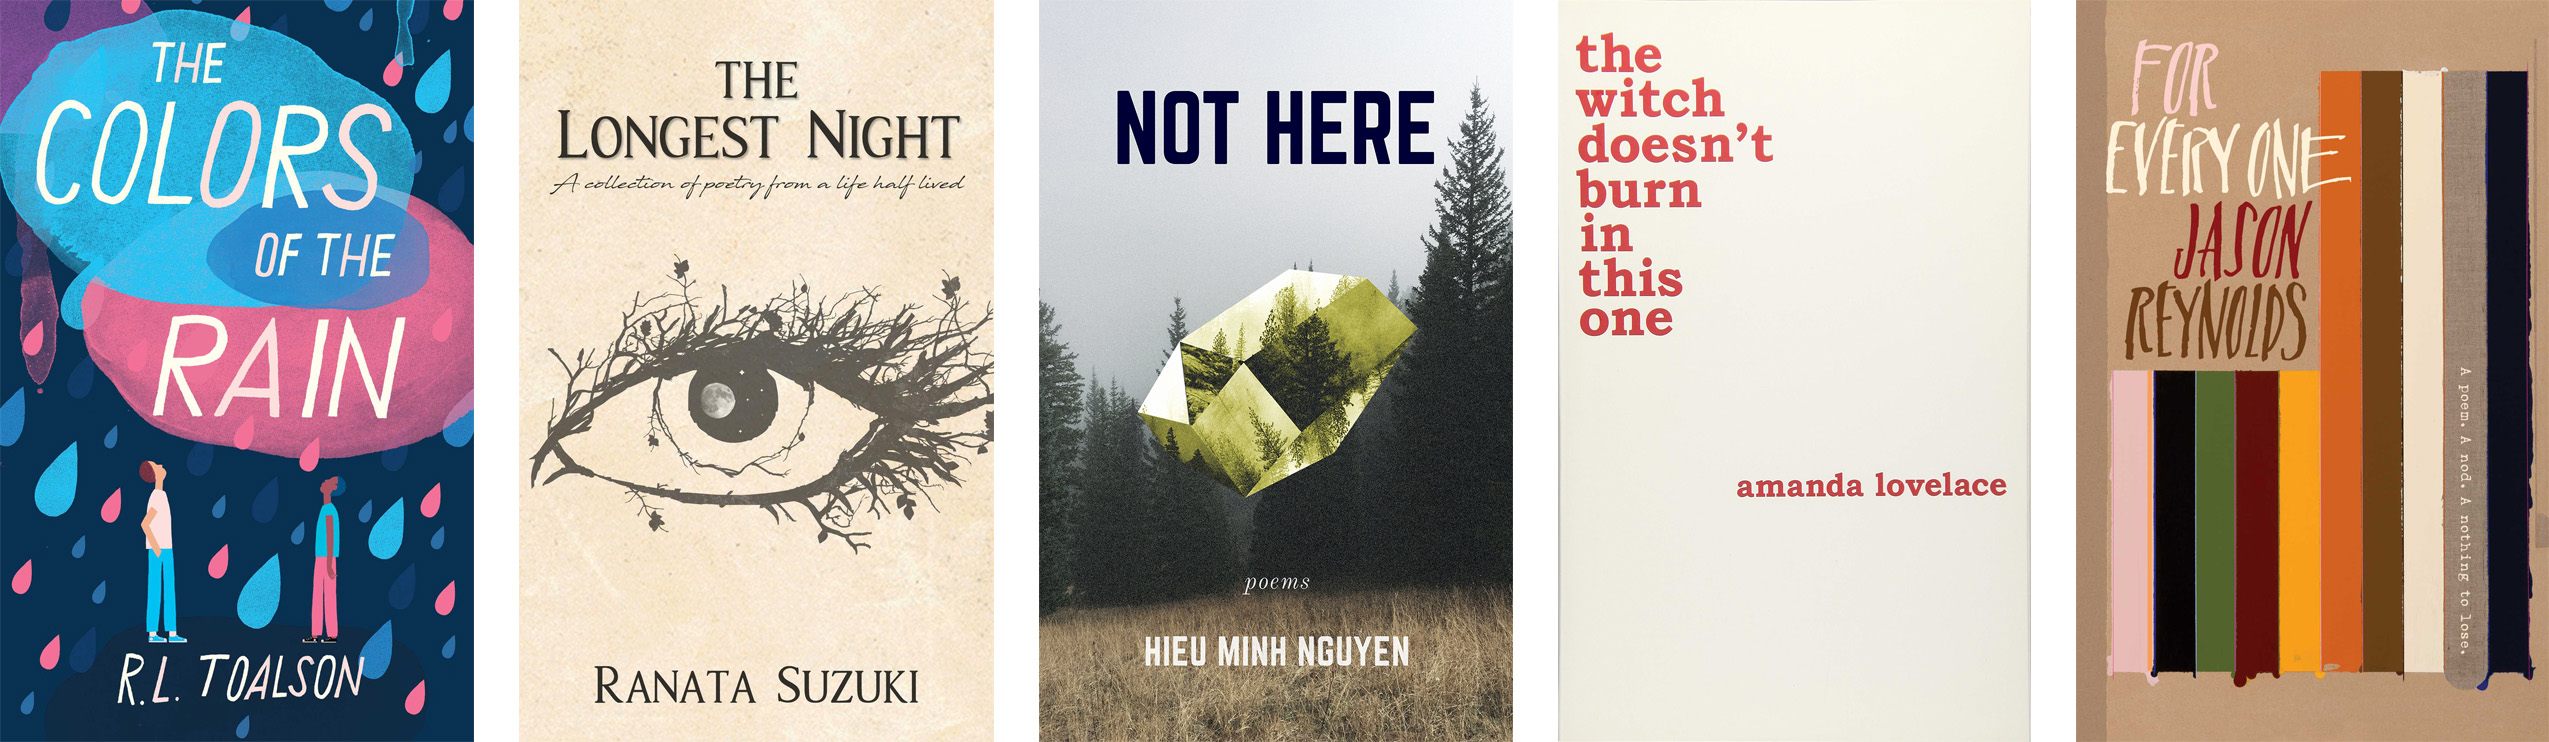 10 Poetry Books From 2018 That You Should Read The Nerd Daily